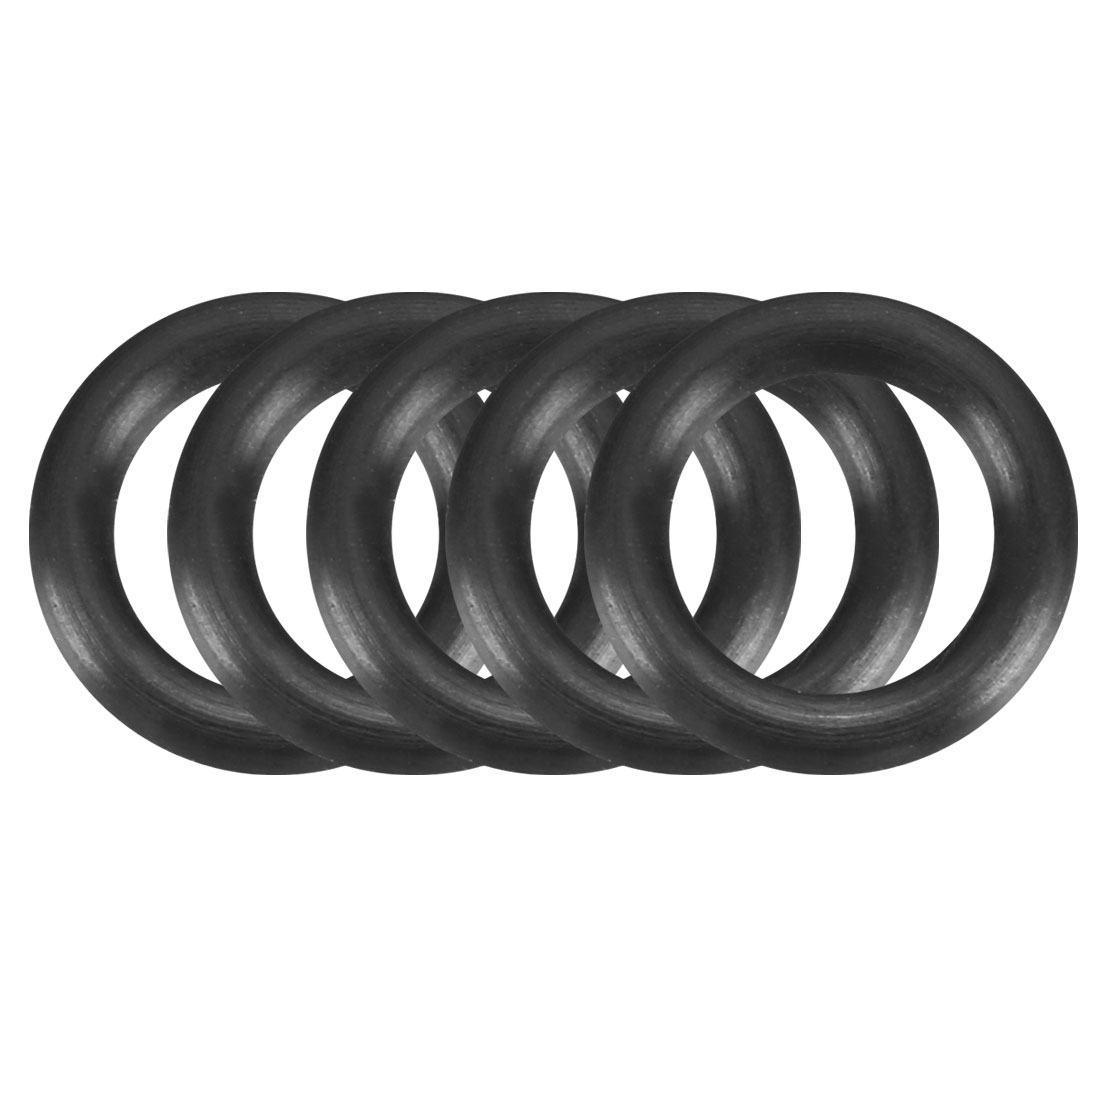 50Pcs Black 11mm Dia 2mm Thickness Nitrile Rubber O Ring NBR Sealing Grommets